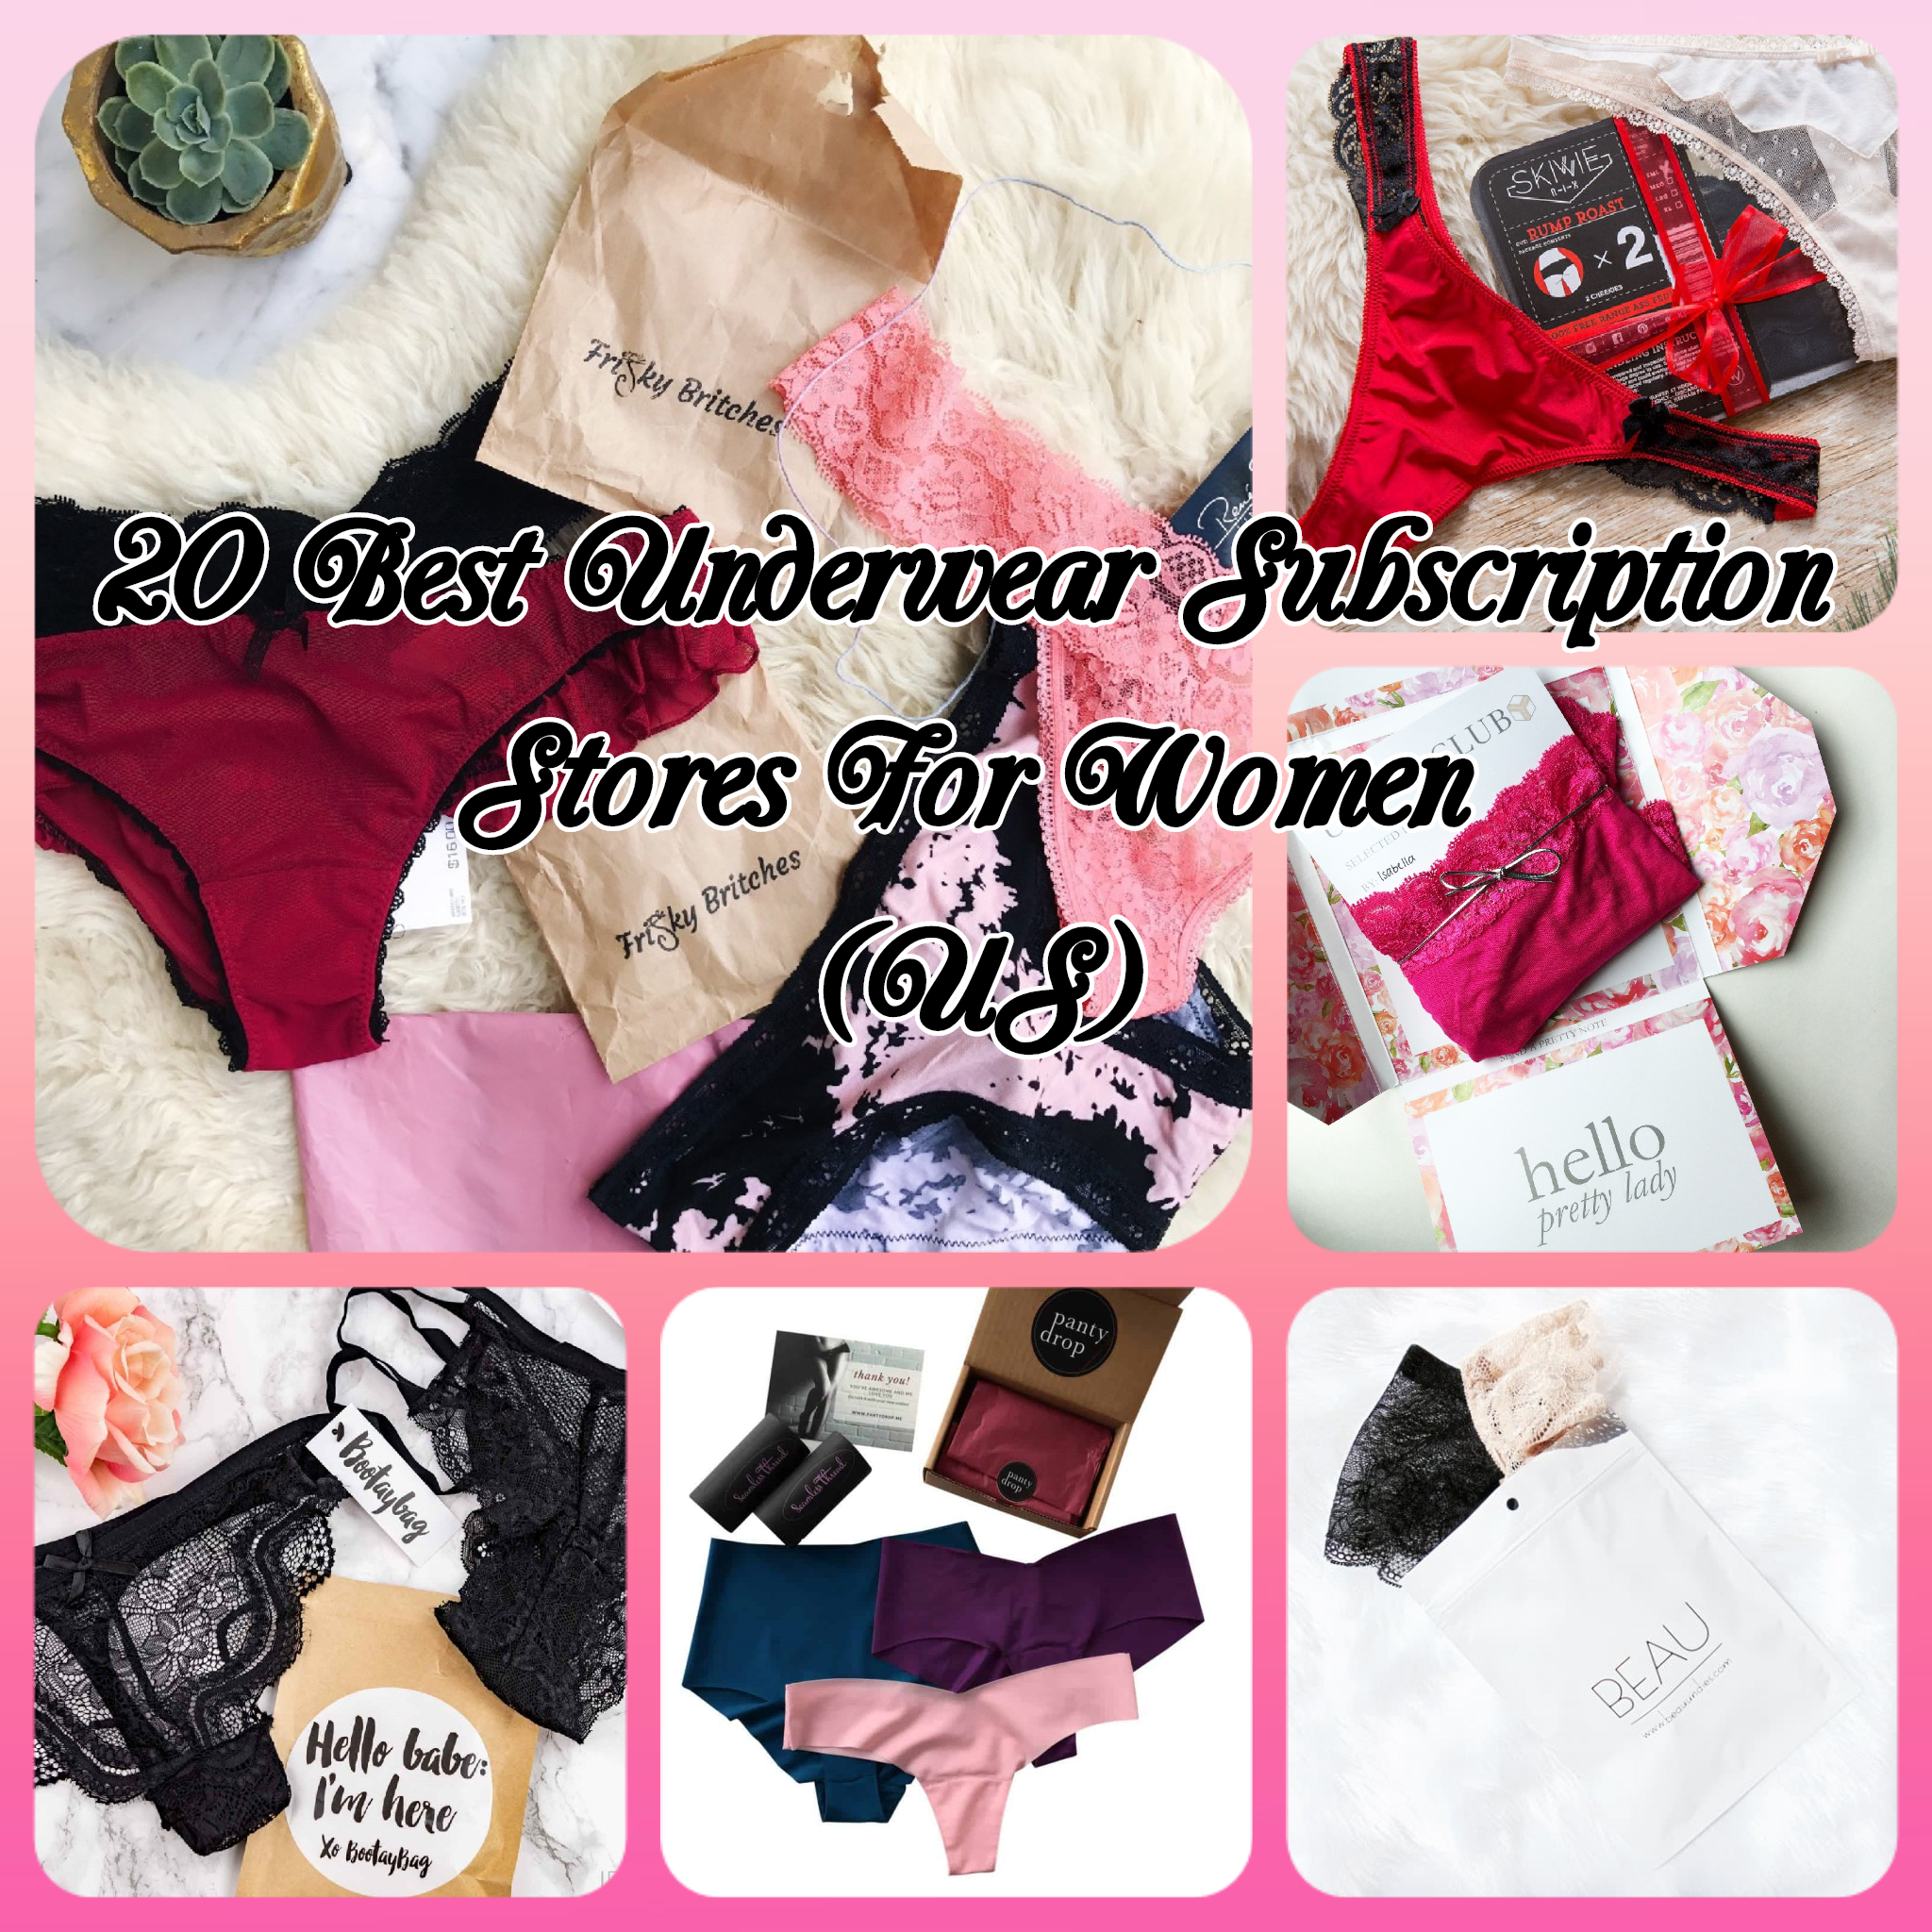 58f6c08dc6f 20 Best Underwear/Panty Subscription Boxes For Women (US)